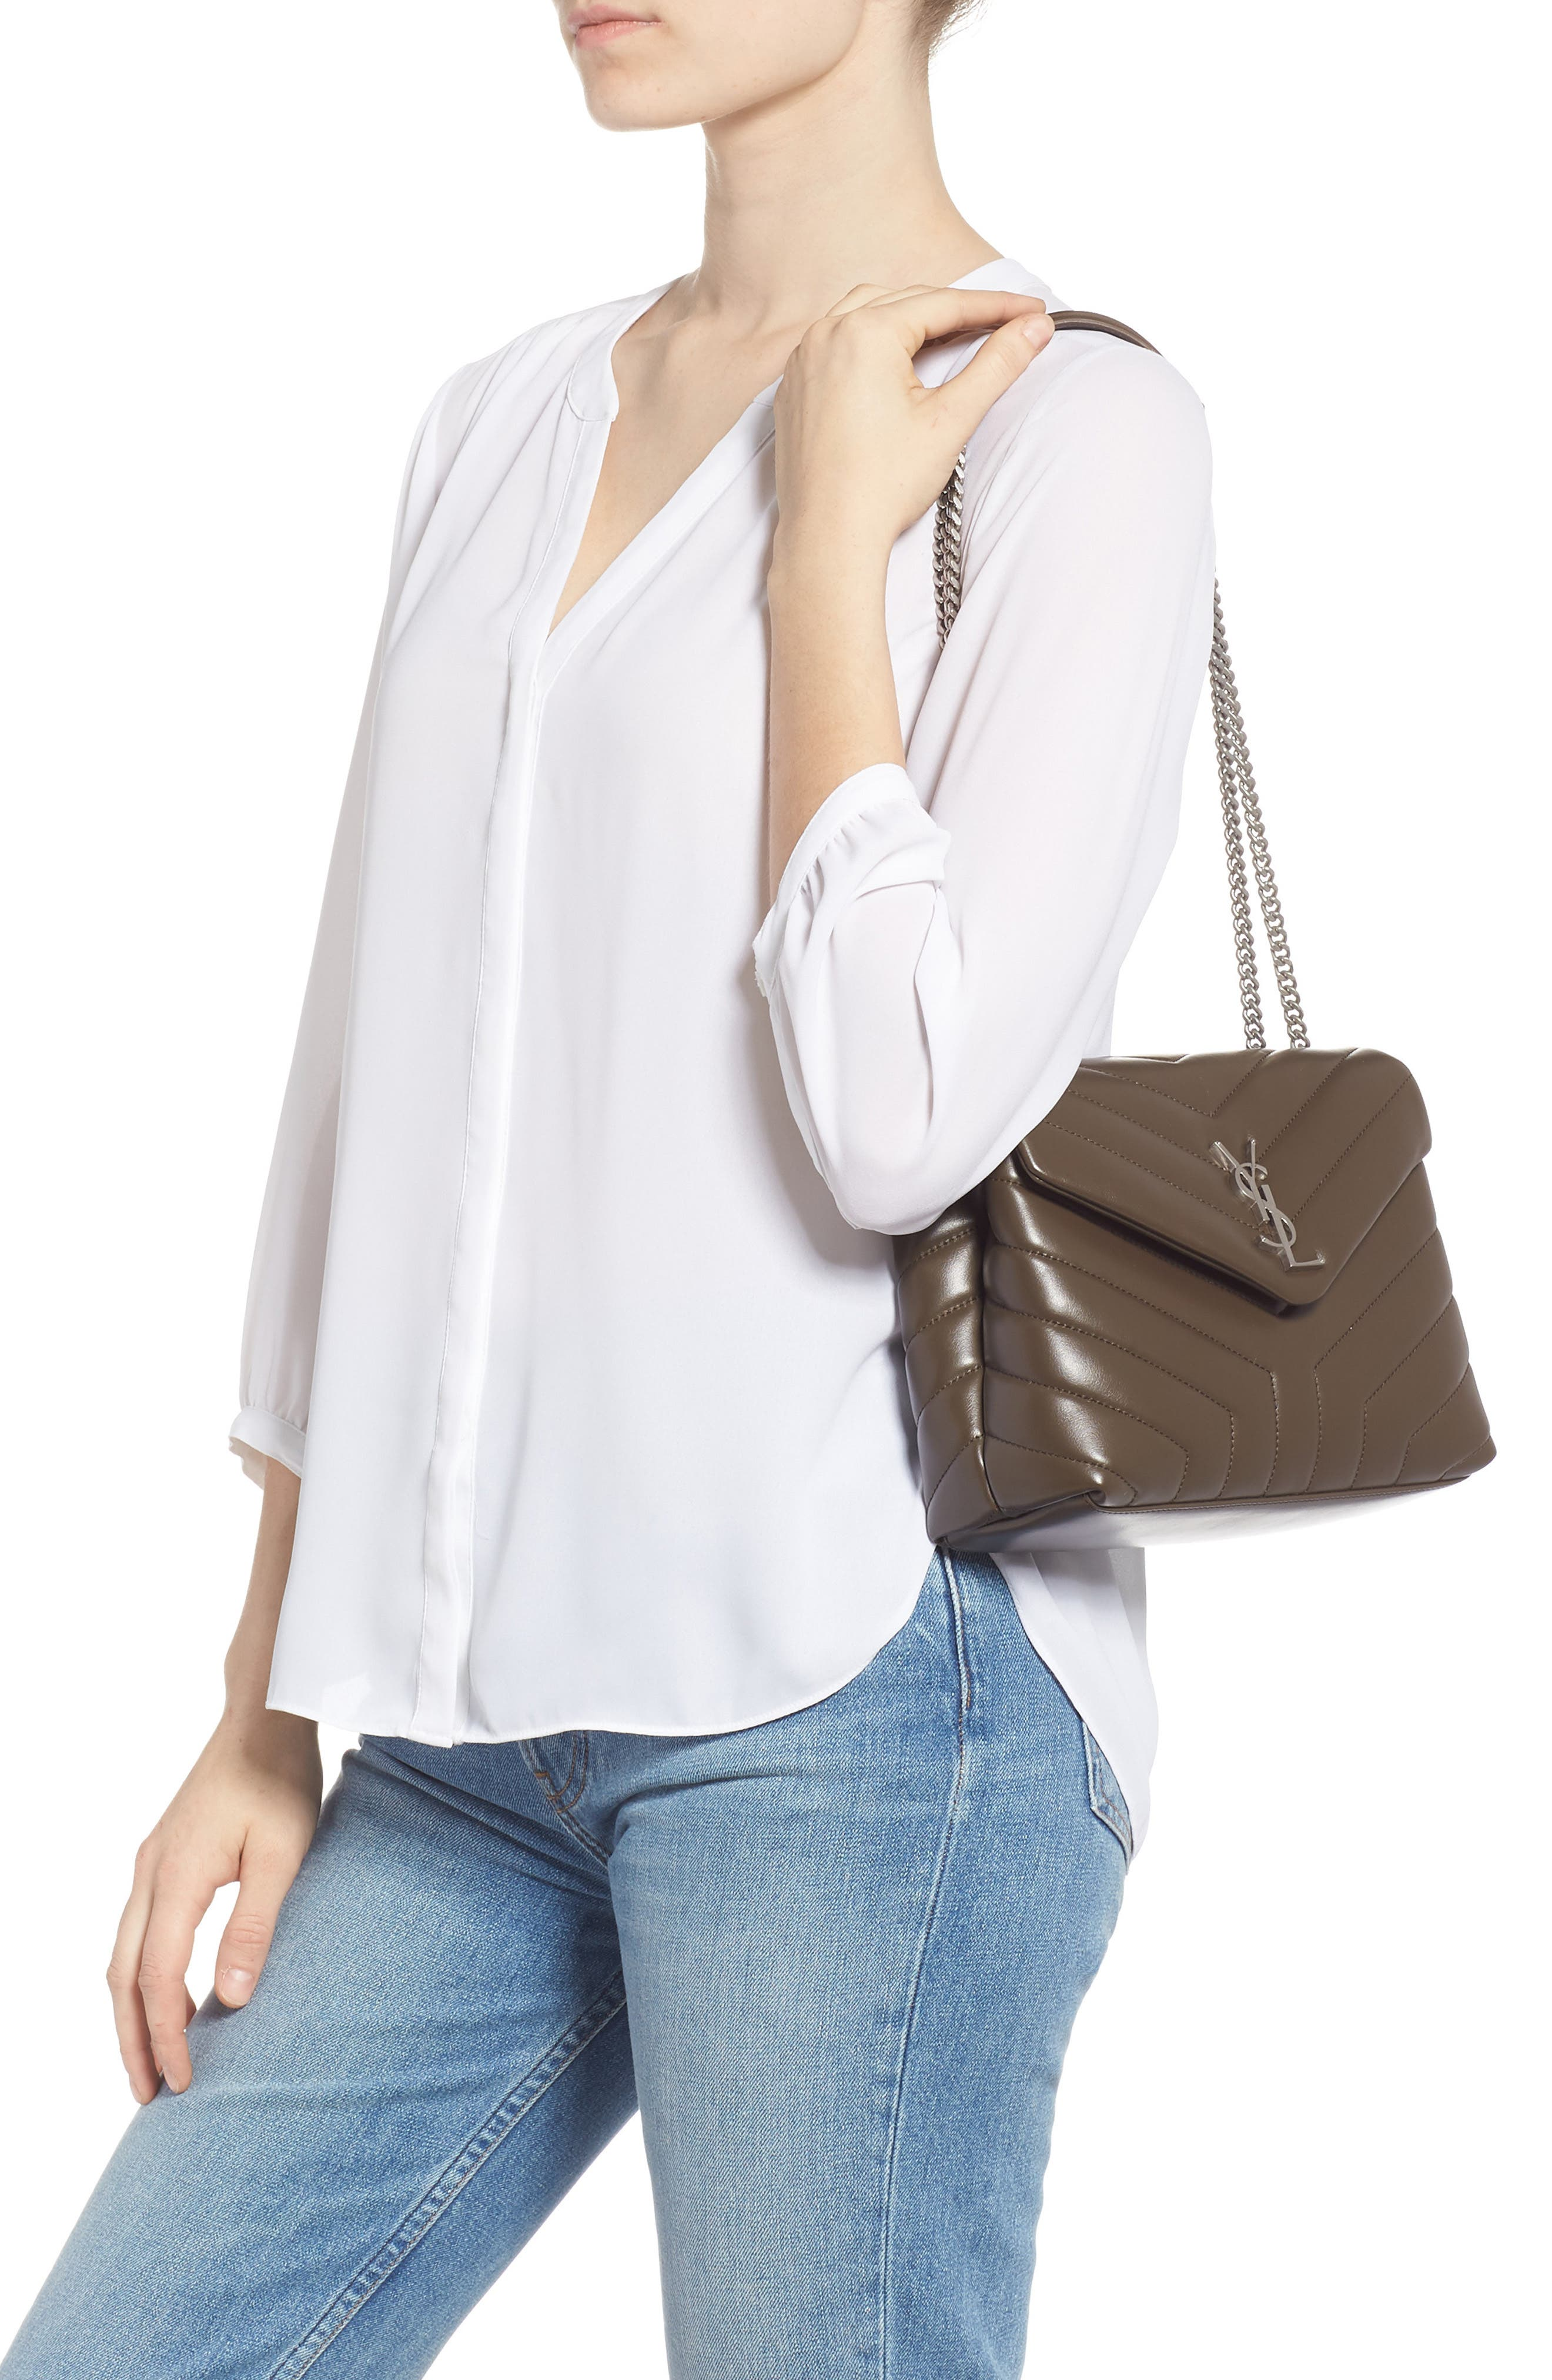 Small Loulou Matelassé Leather Shoulder Bag,                             Alternate thumbnail 2, color,                             FAGGIO/ FAGGIO